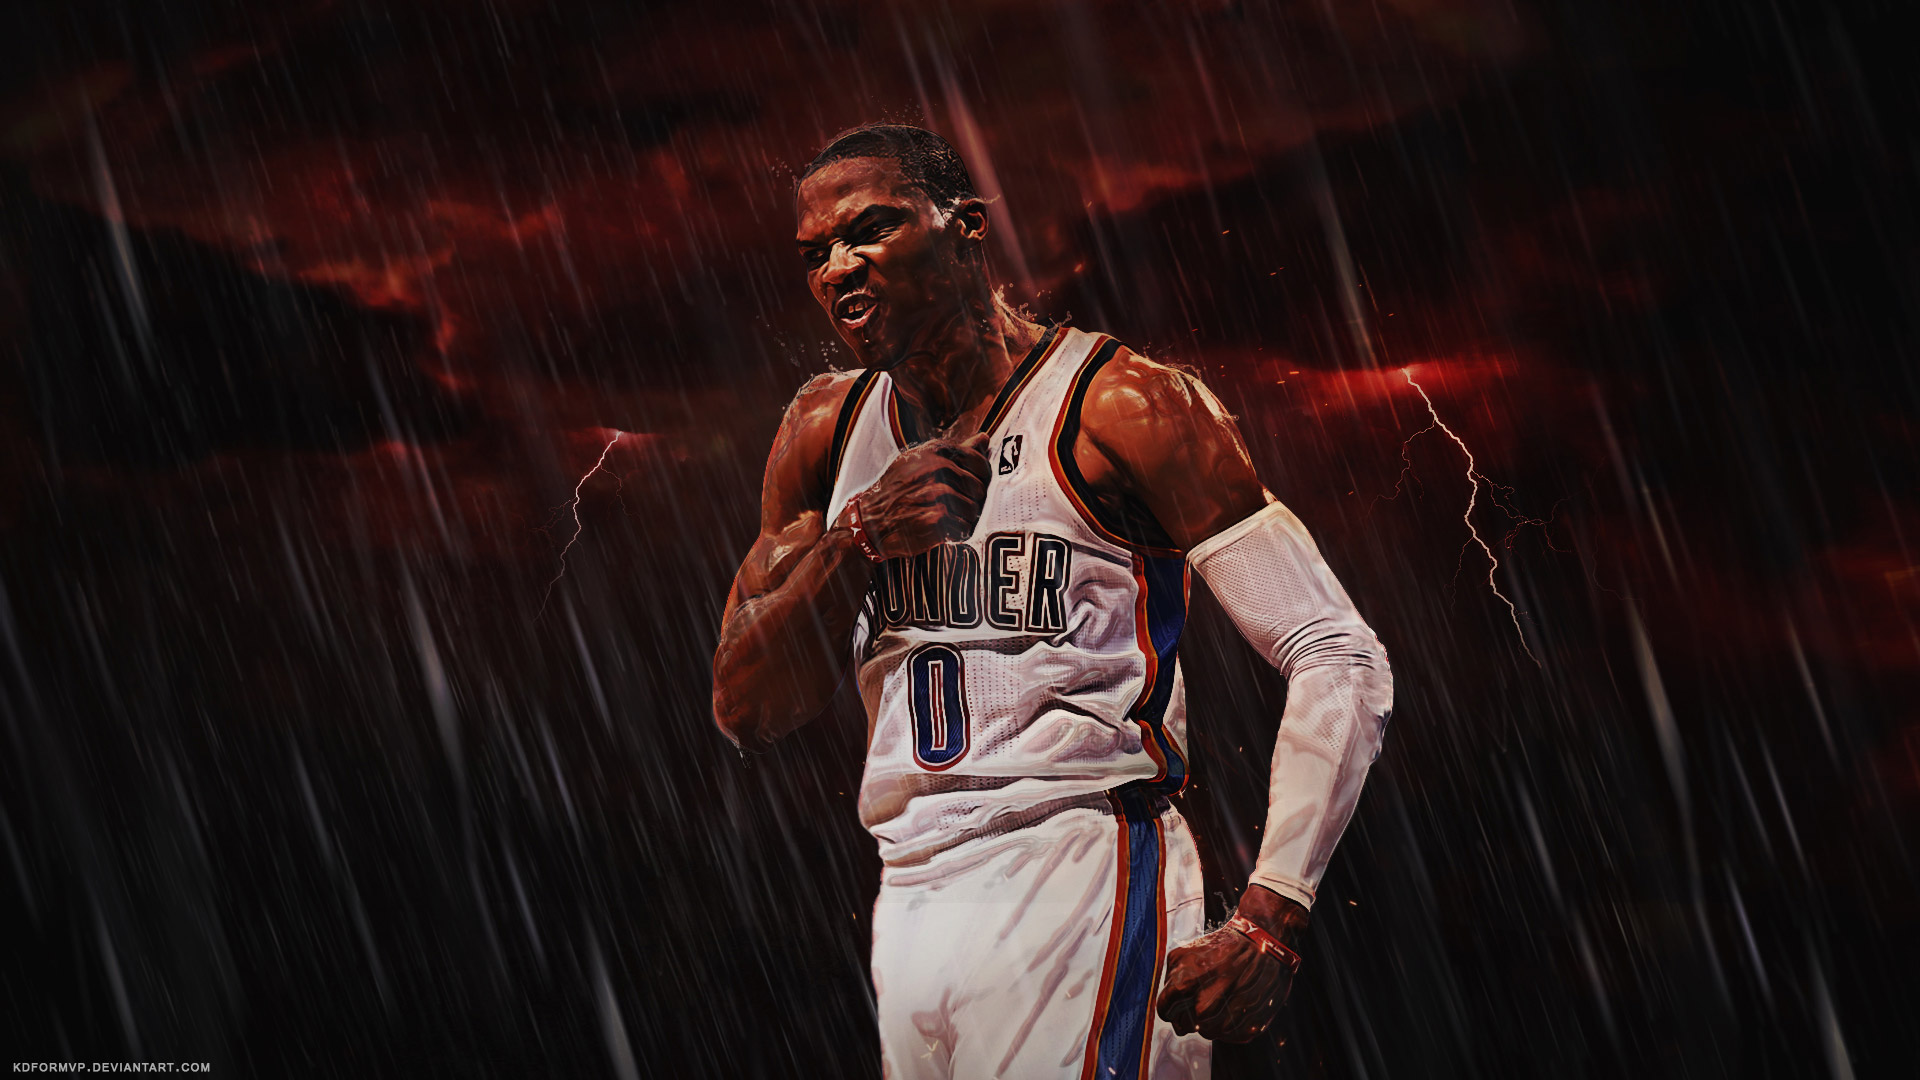 a192de24f692 Oaklahoma City Thunder star guard Russell Westbrook has agreed to a  three-year